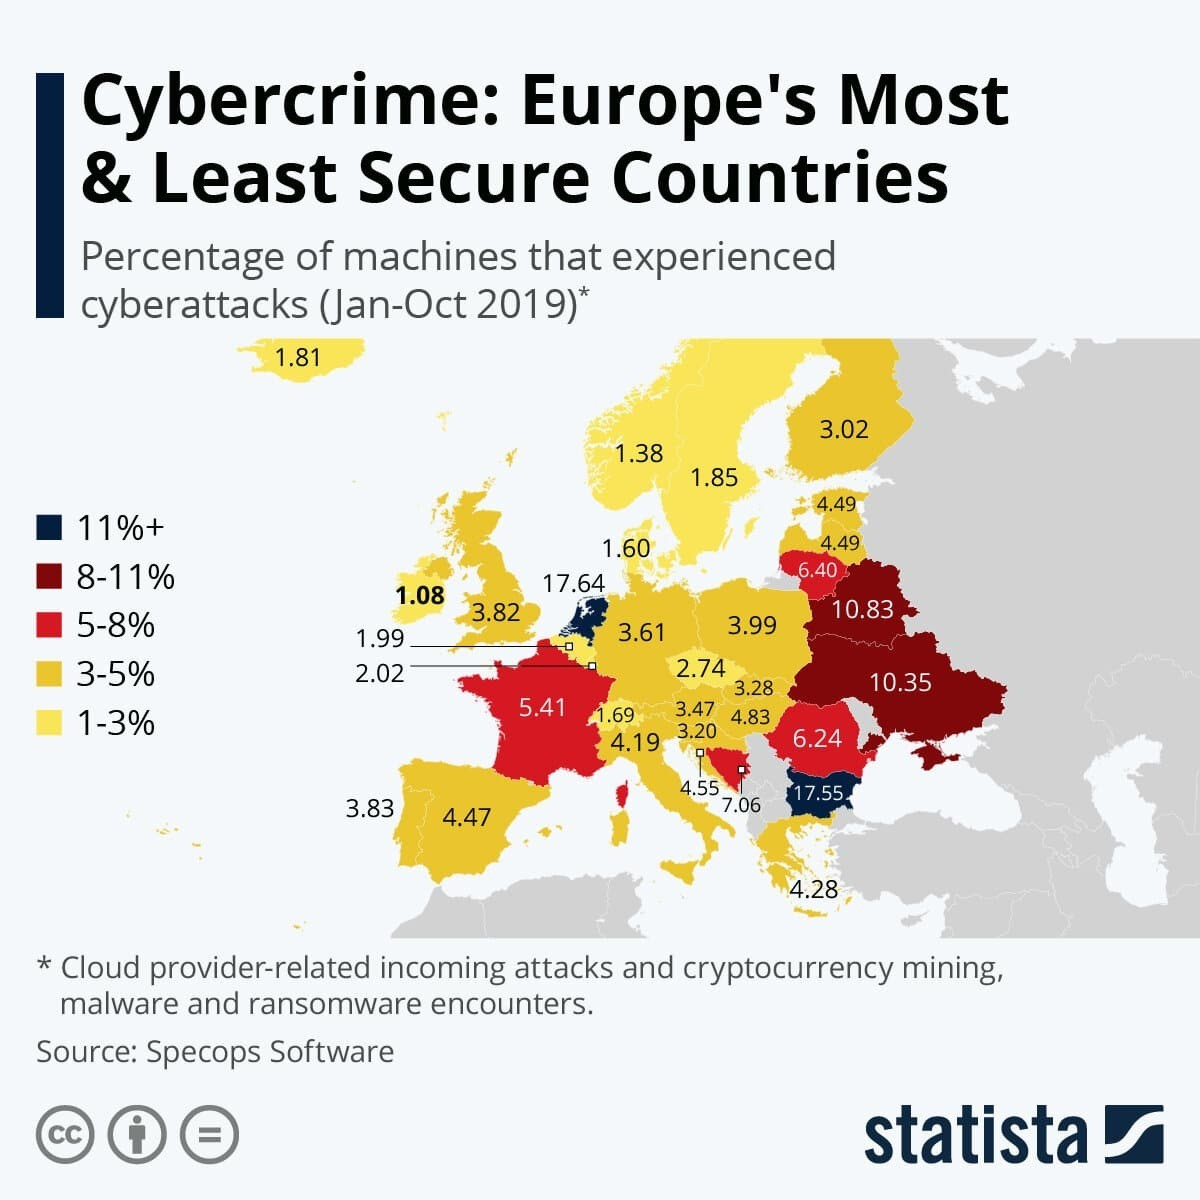 Cybercrime: Europe's Most & Least Secure Countries